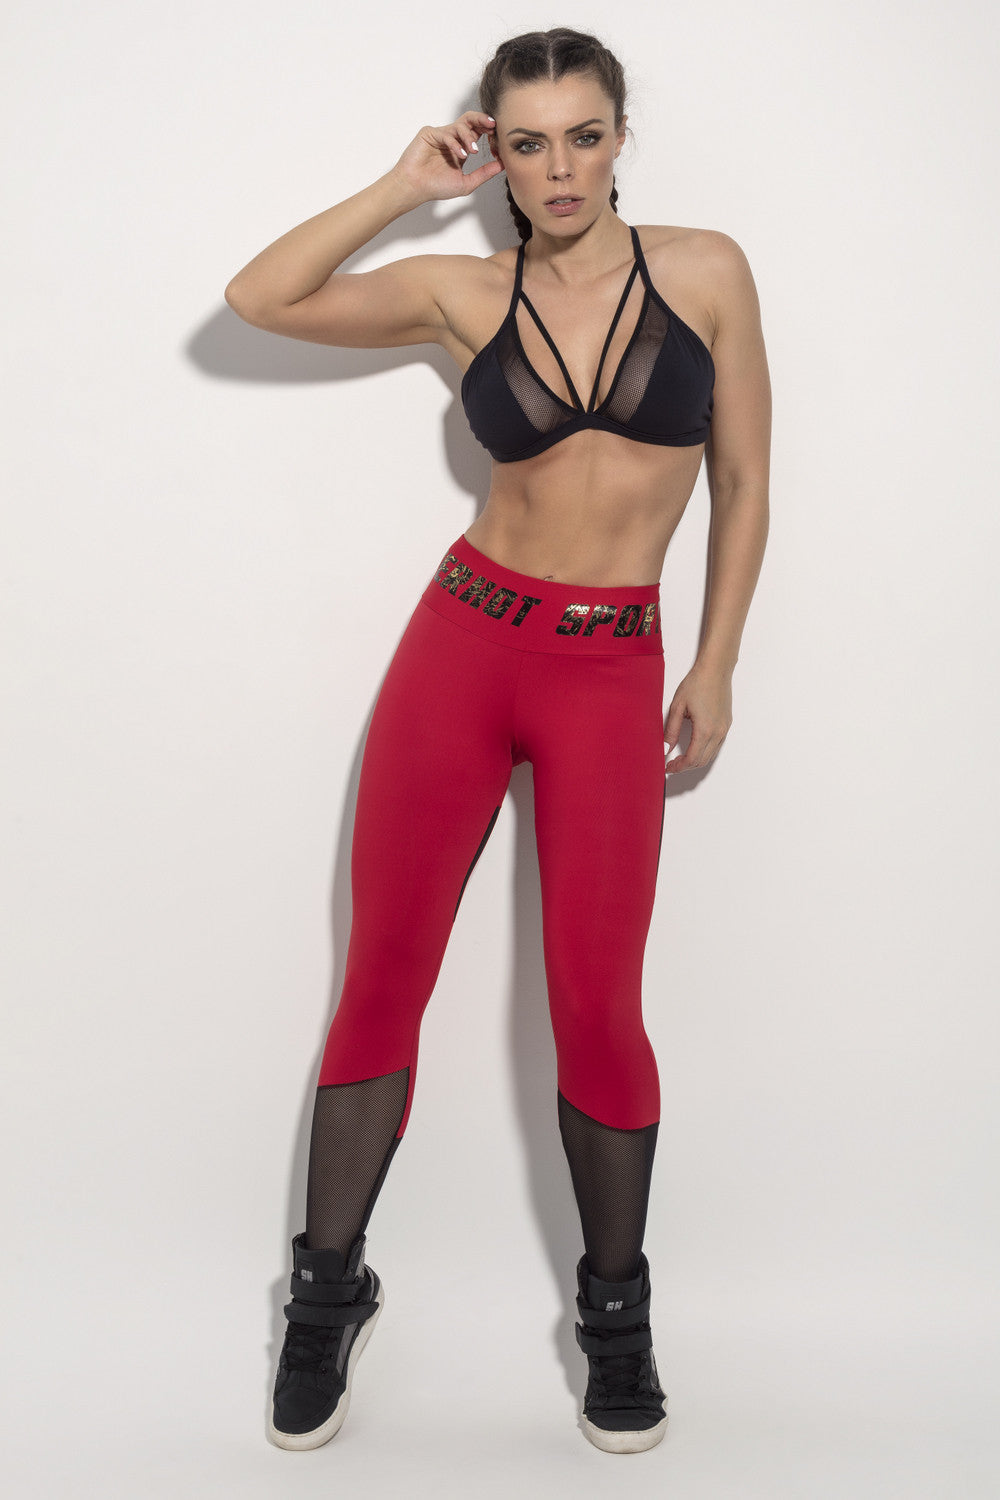 LEGGING SUPERHOT SPORTS - RED